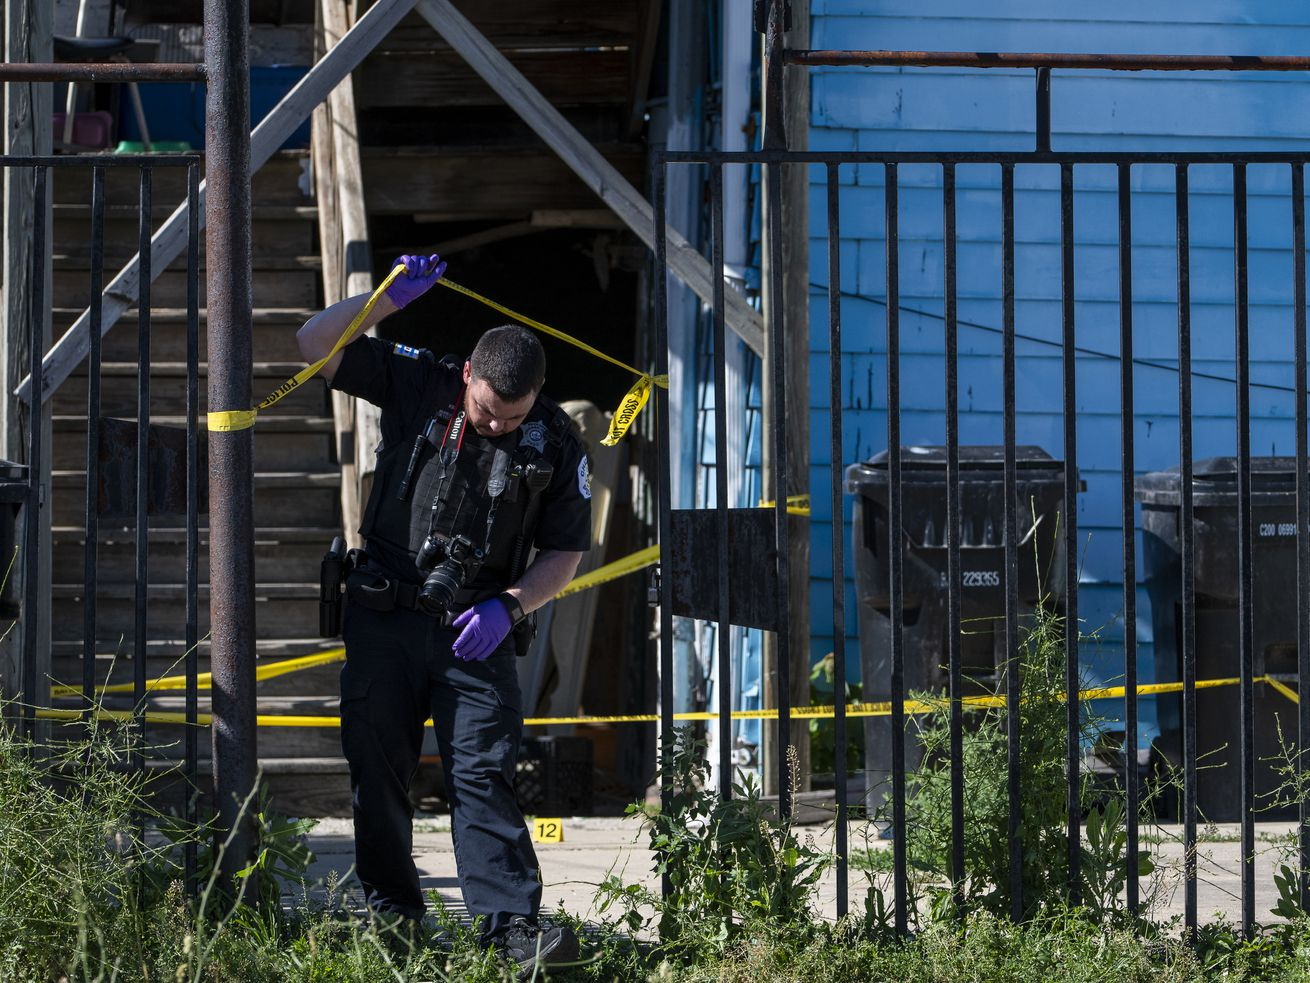 Chicago police work the scene where a 14-year-old by was shot and killed in the 1100 block of South Karlov Ave, in the Lawndale neighborhood, Thursday, June 10, 2021. | Tyler LaRiviere/Sun-Times